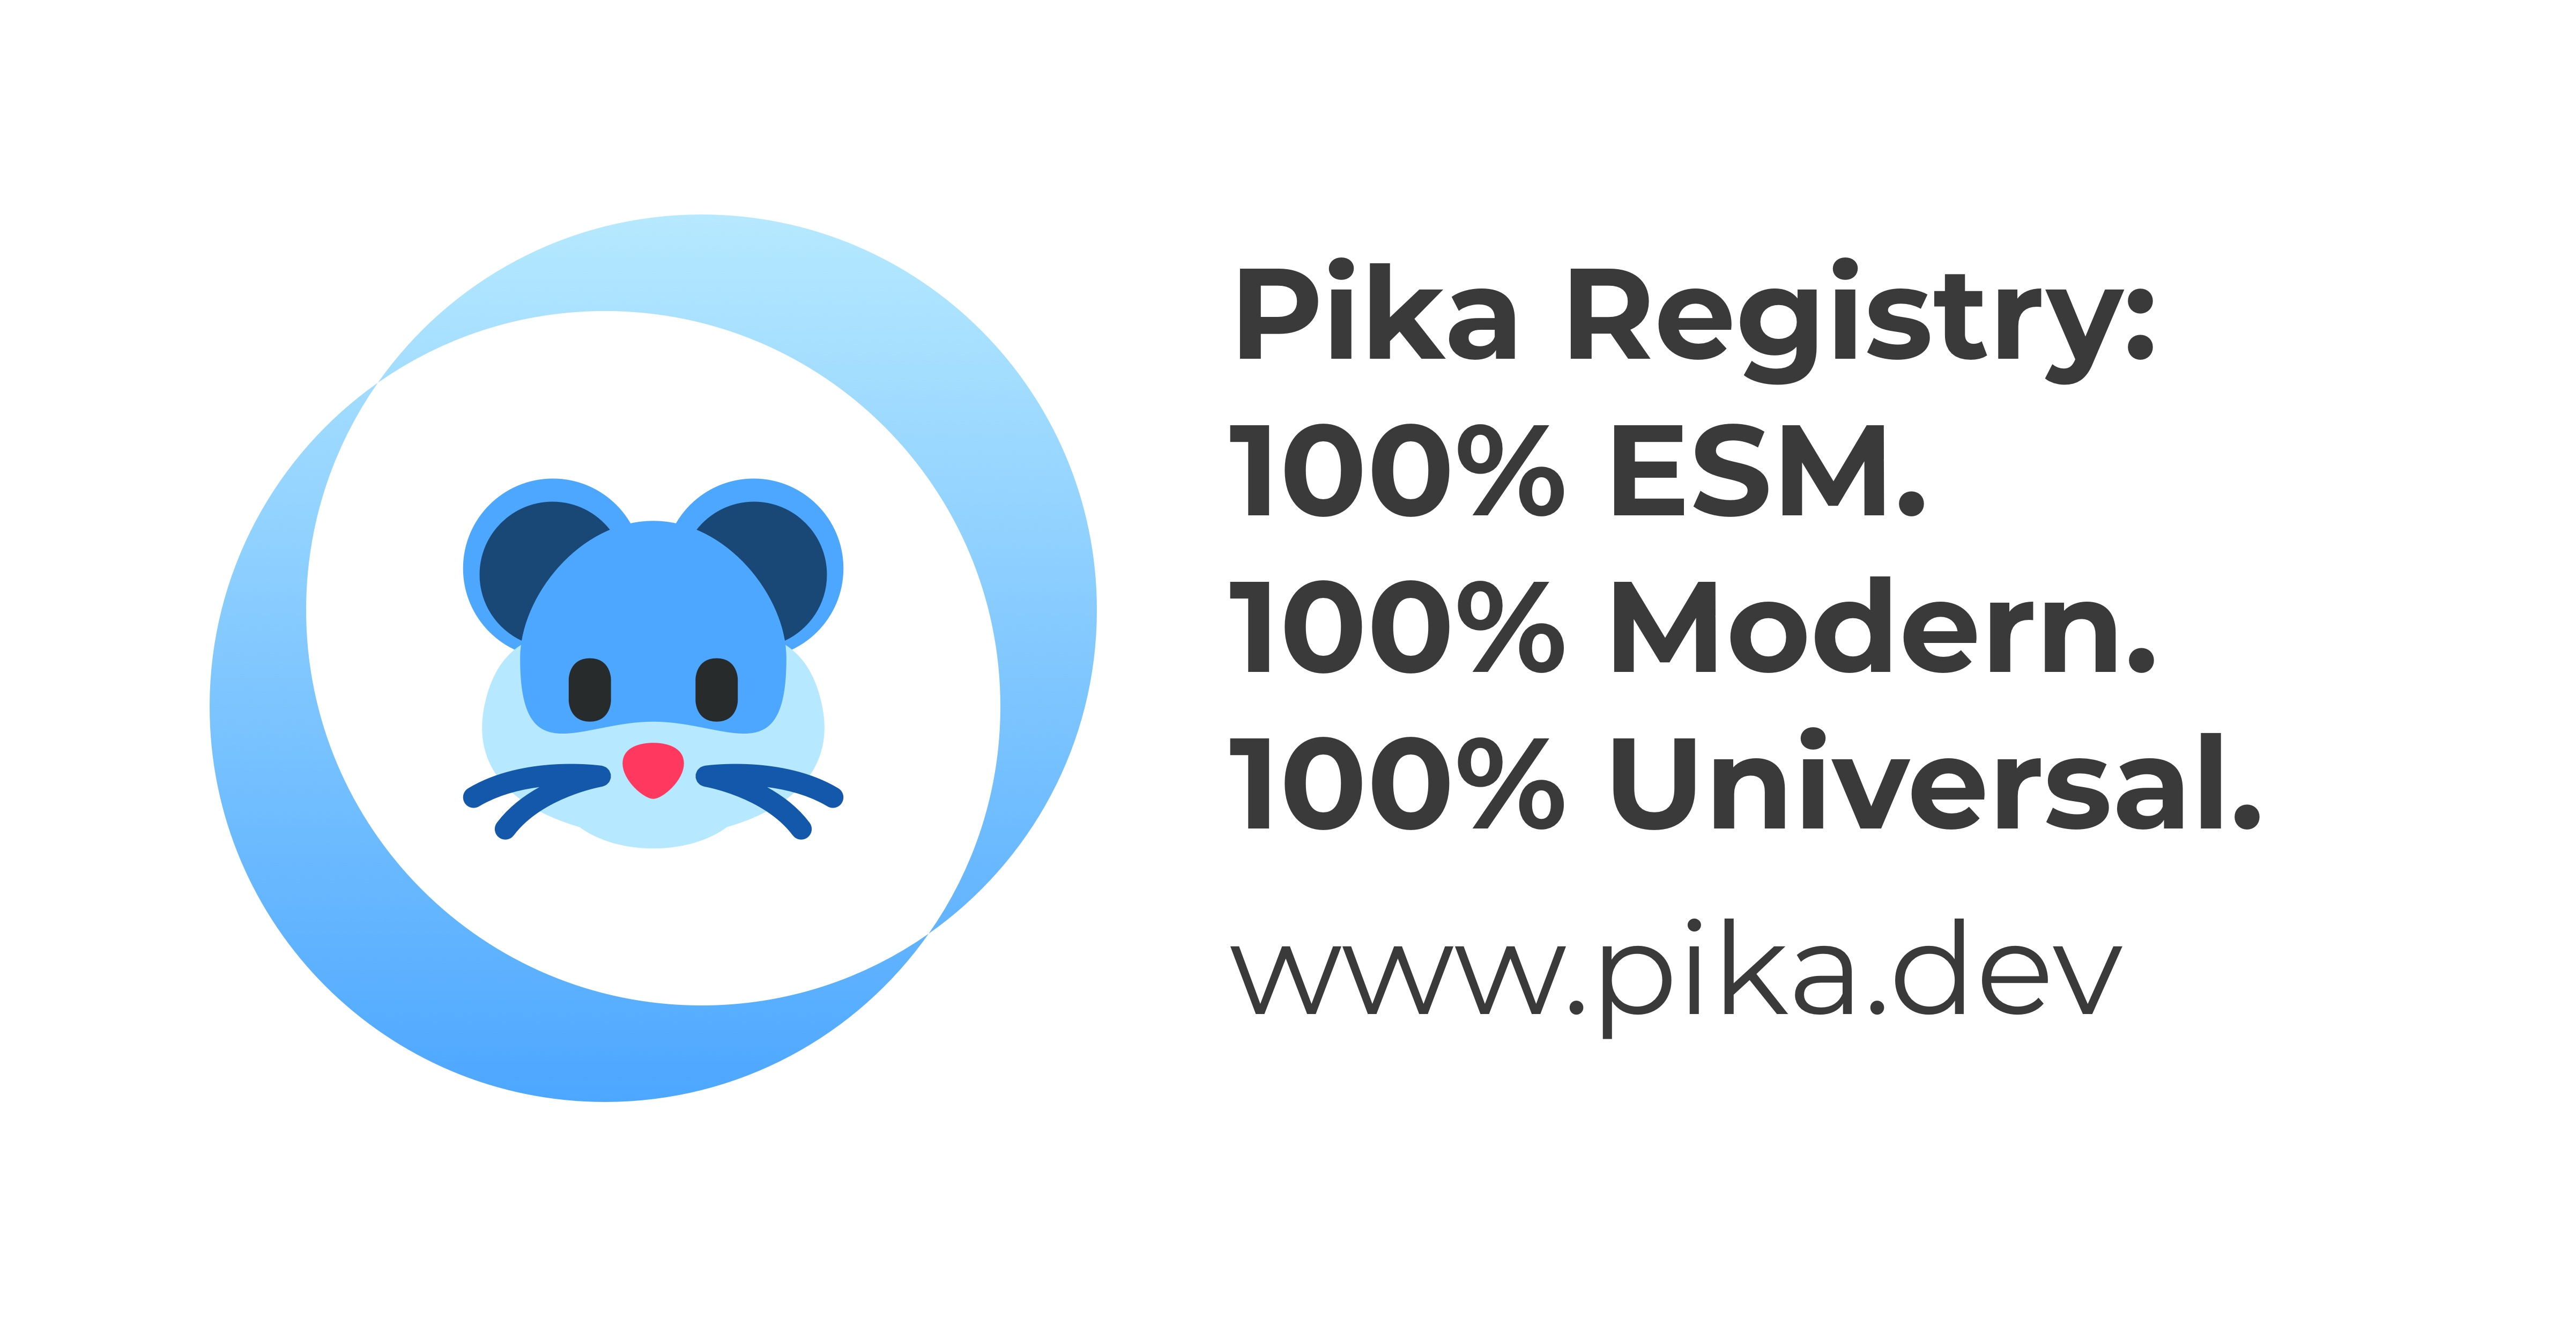 Pika - A new kind of package registry for the modern web.